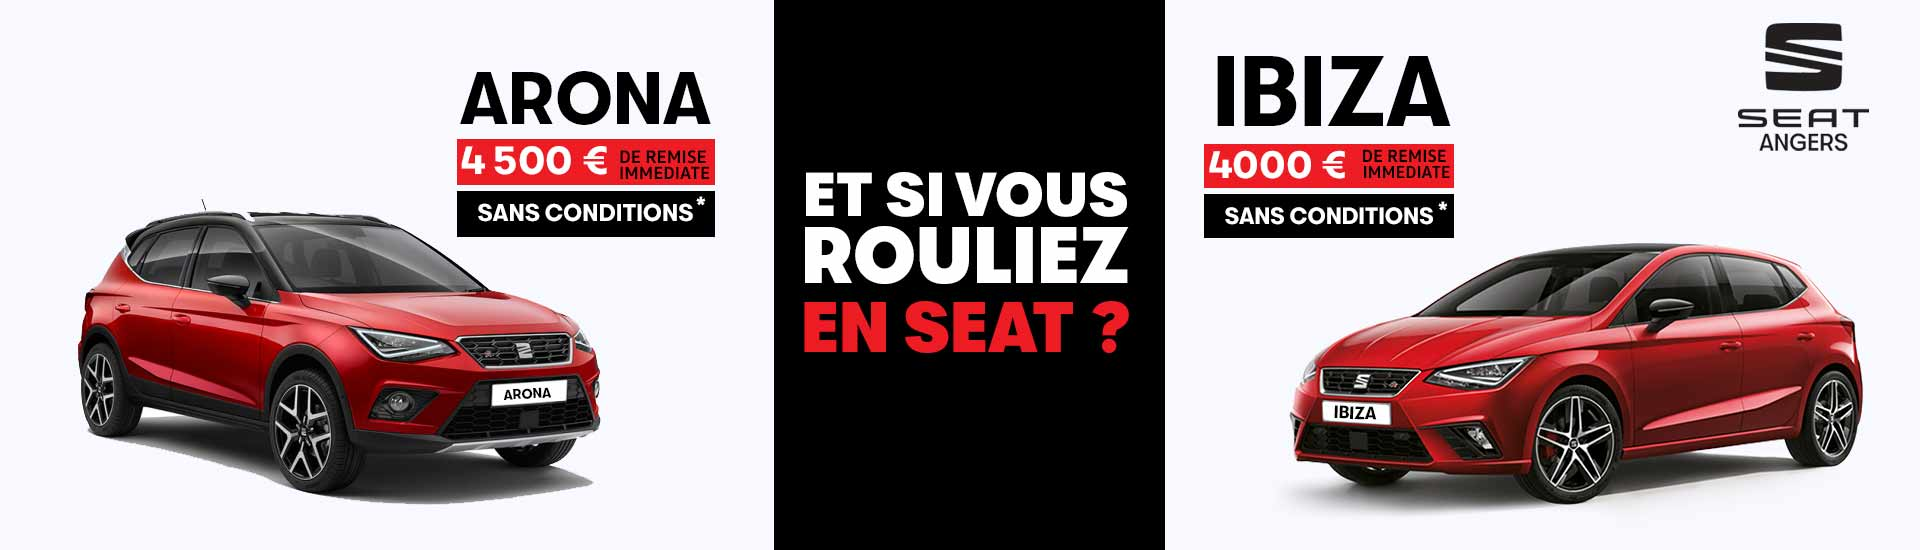 offre_seat_angers_mars